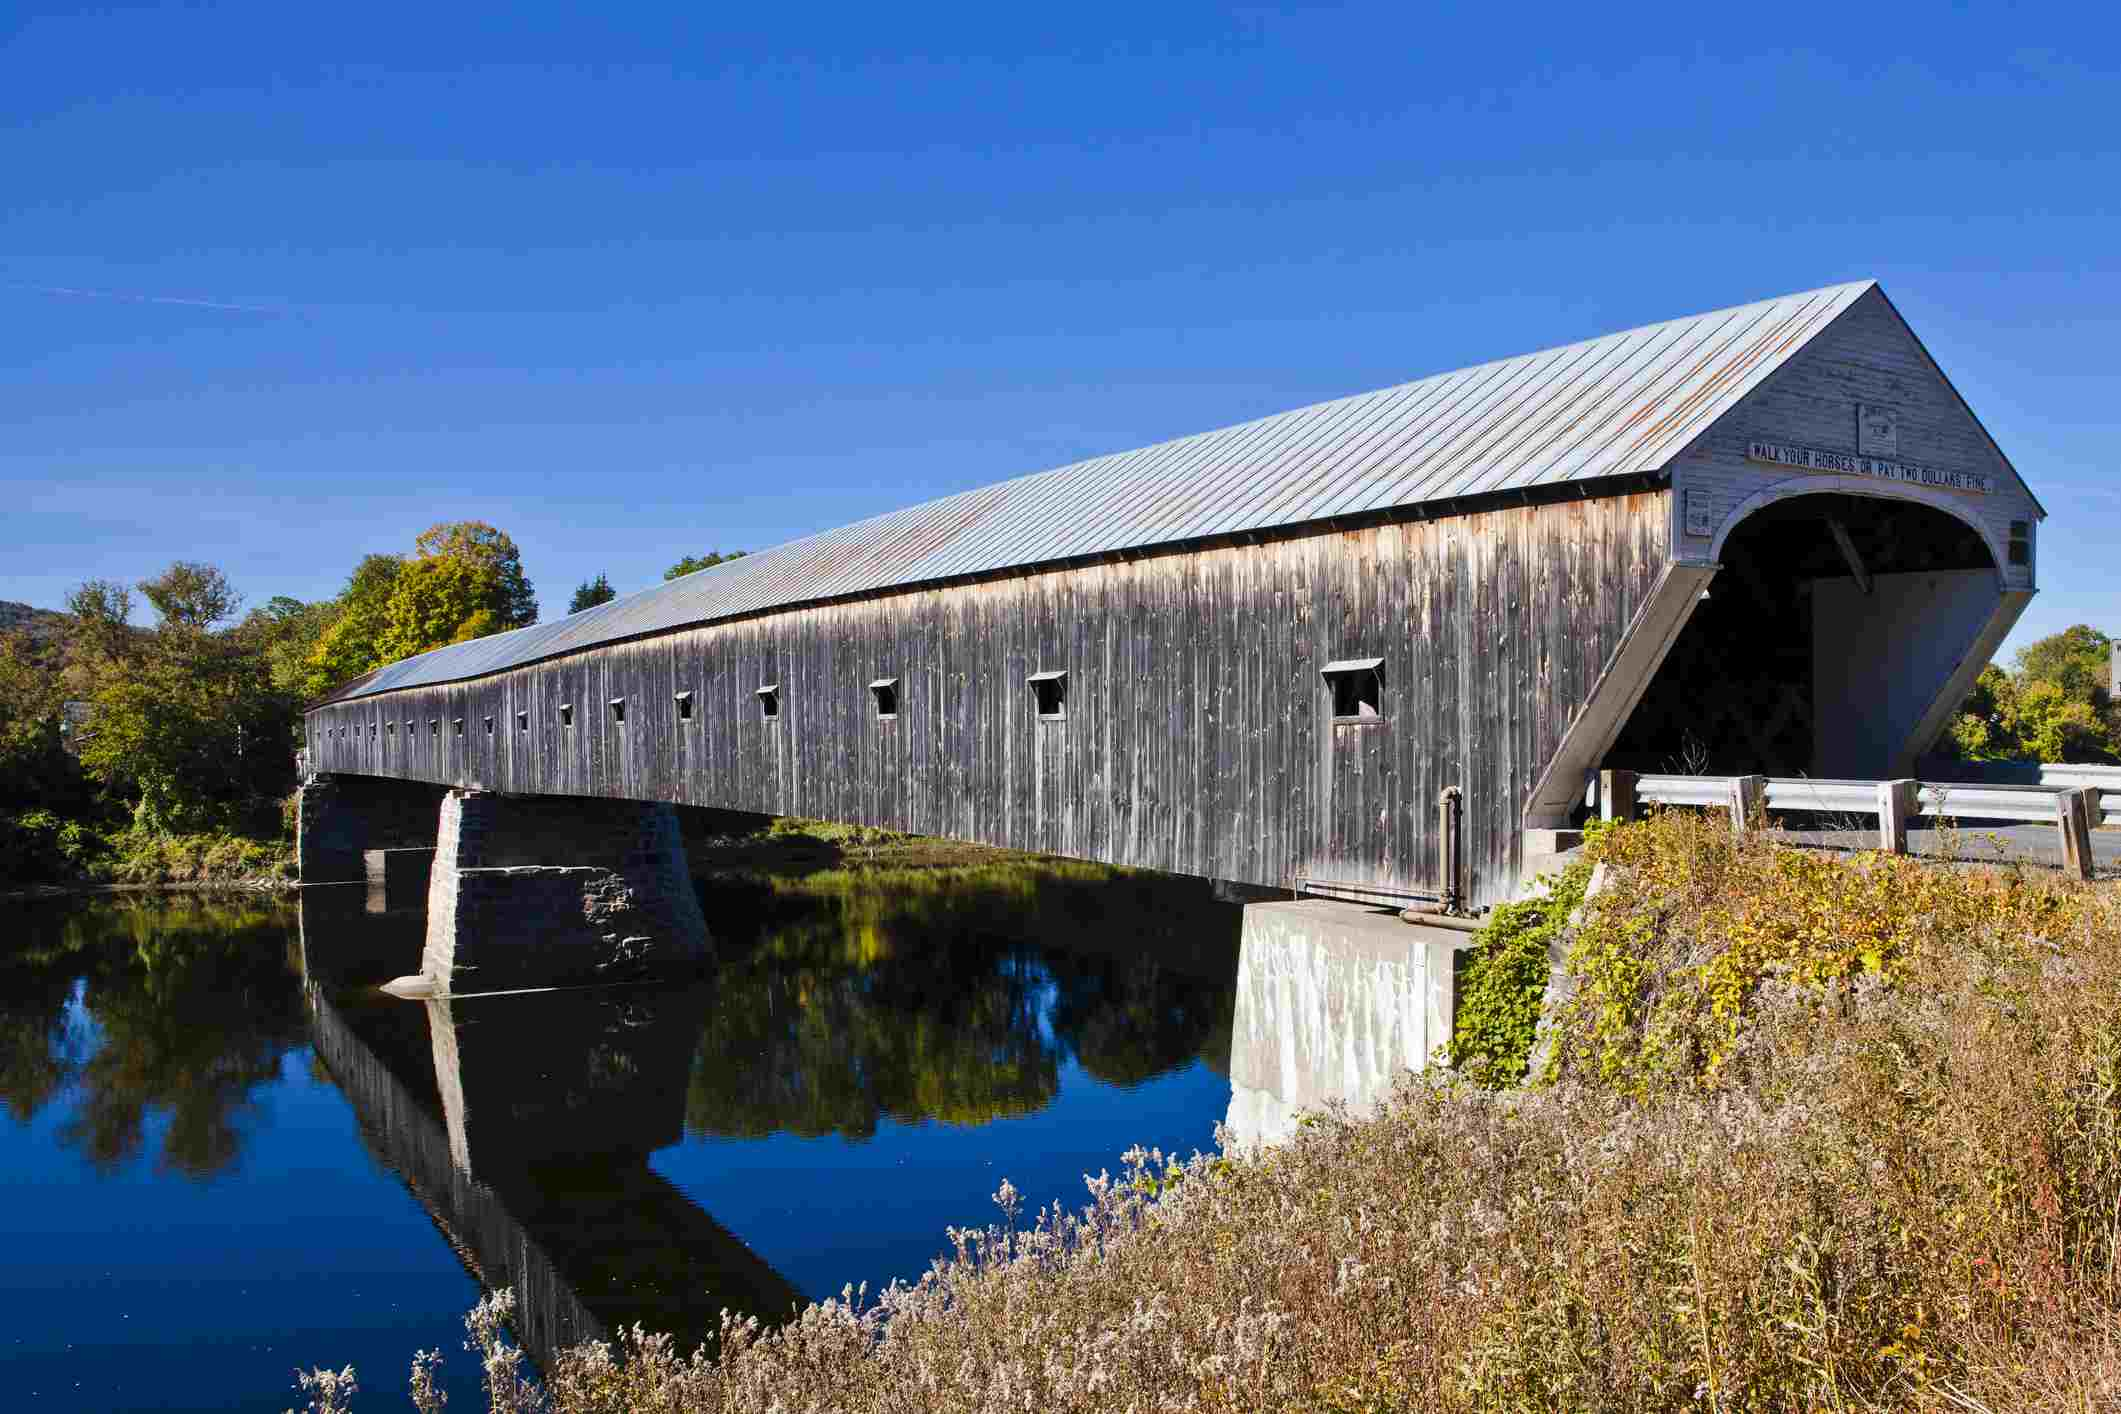 The Cornish Windsor covered bridge connecting New Hampshire and Vermont